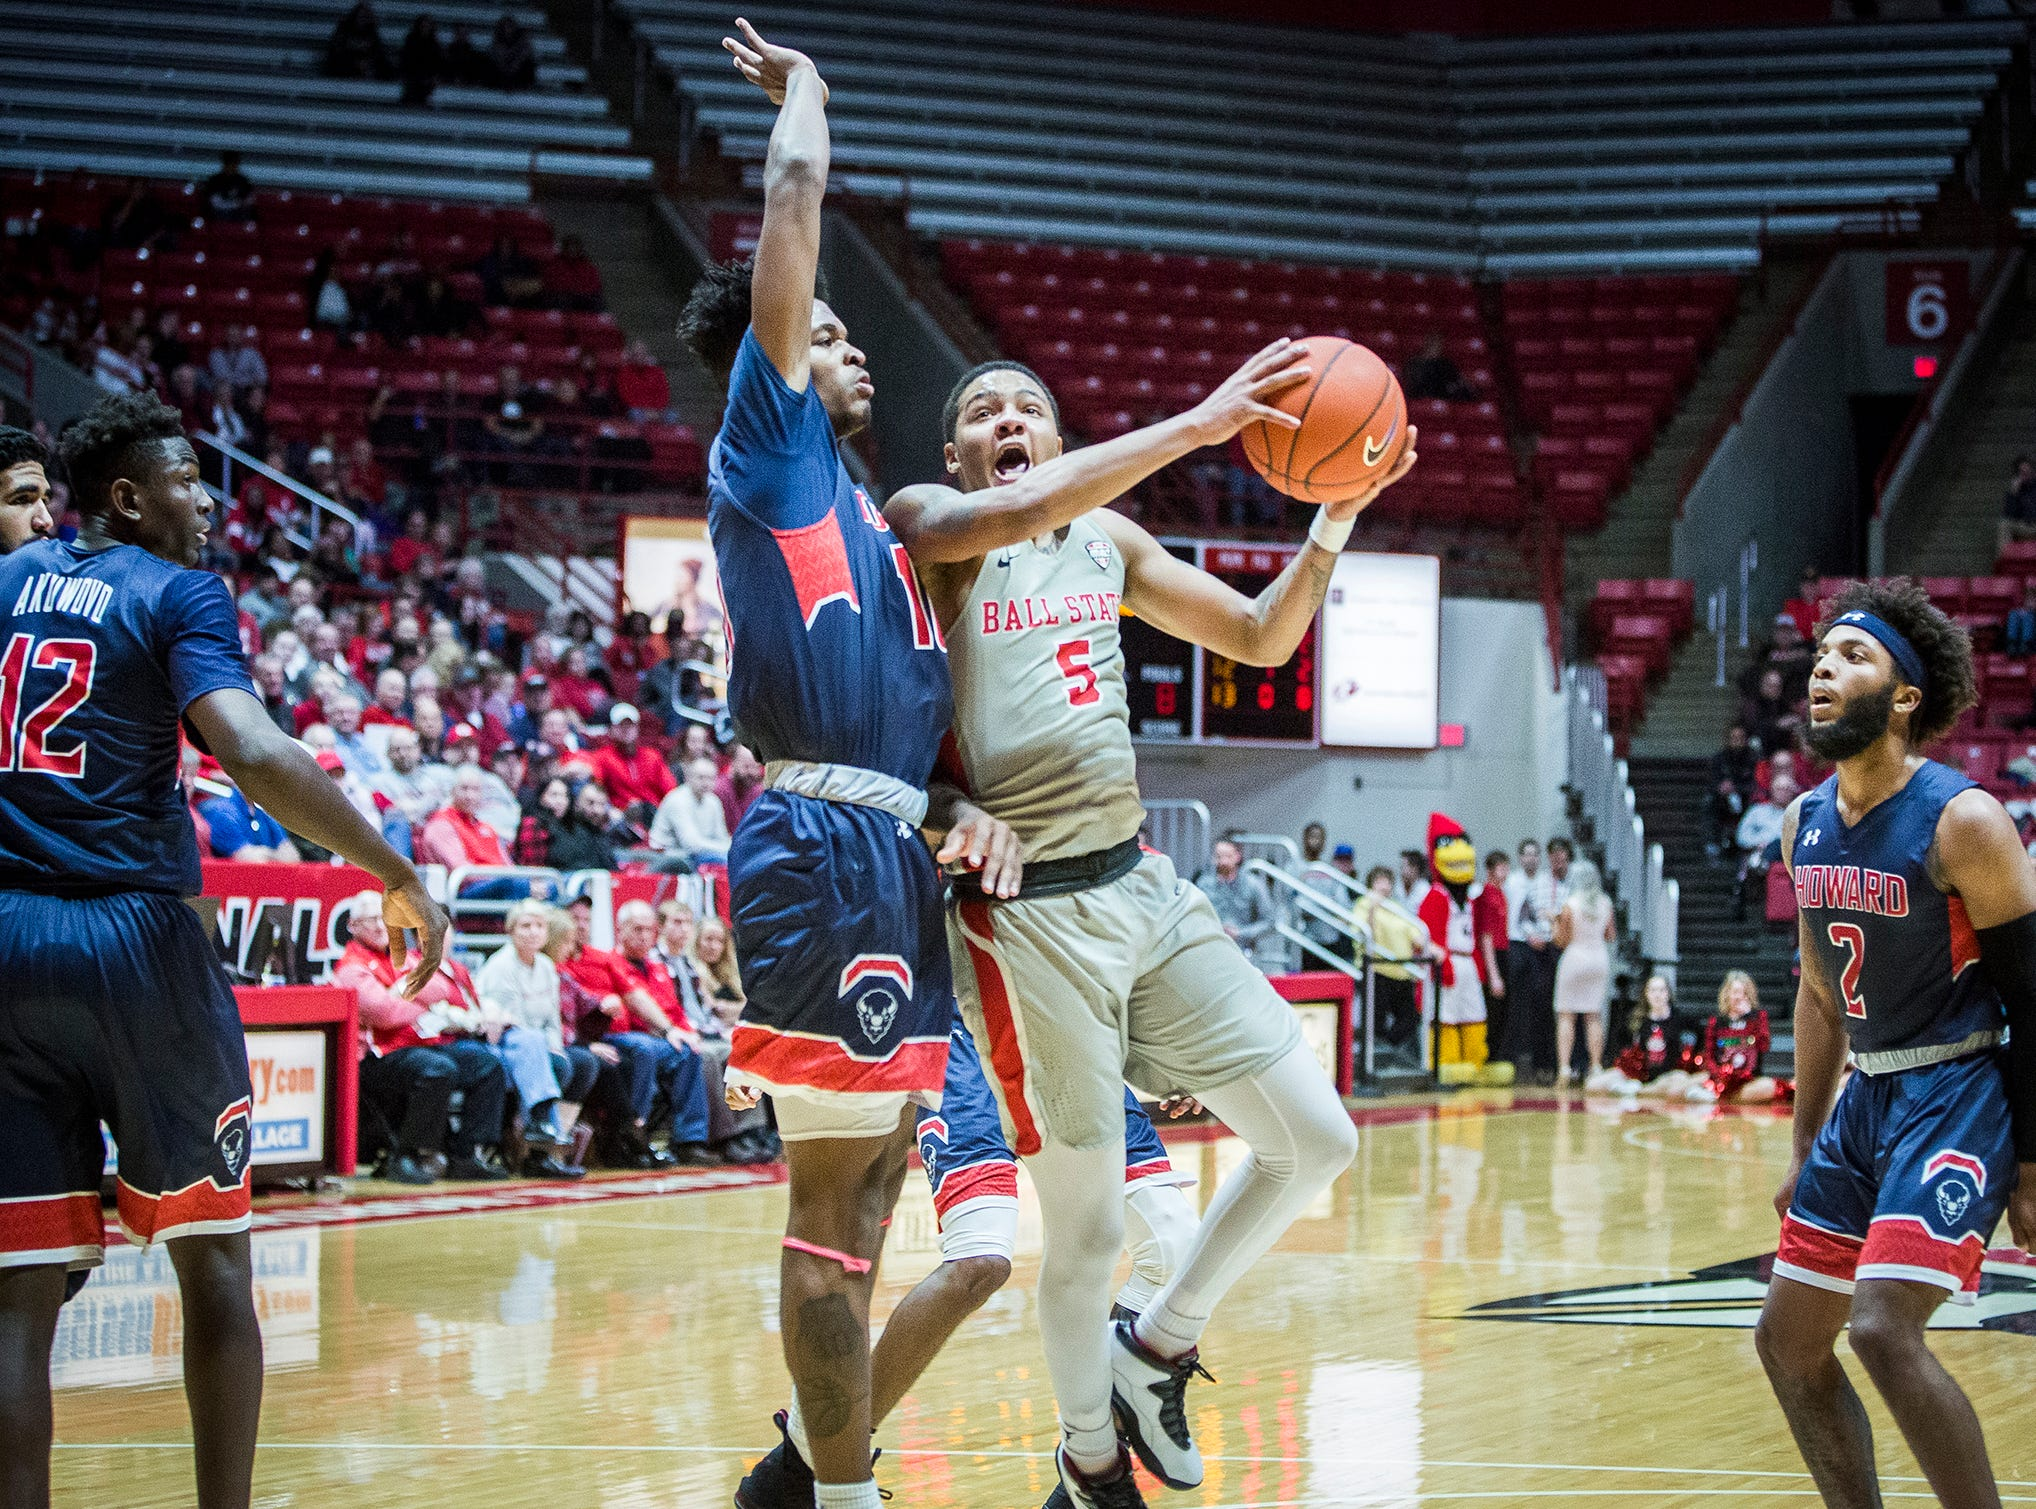 Ball State's Ishmael El-Amin drives against Howard during their game at Worthen Arena Thursday, Dec. 20, 2018.